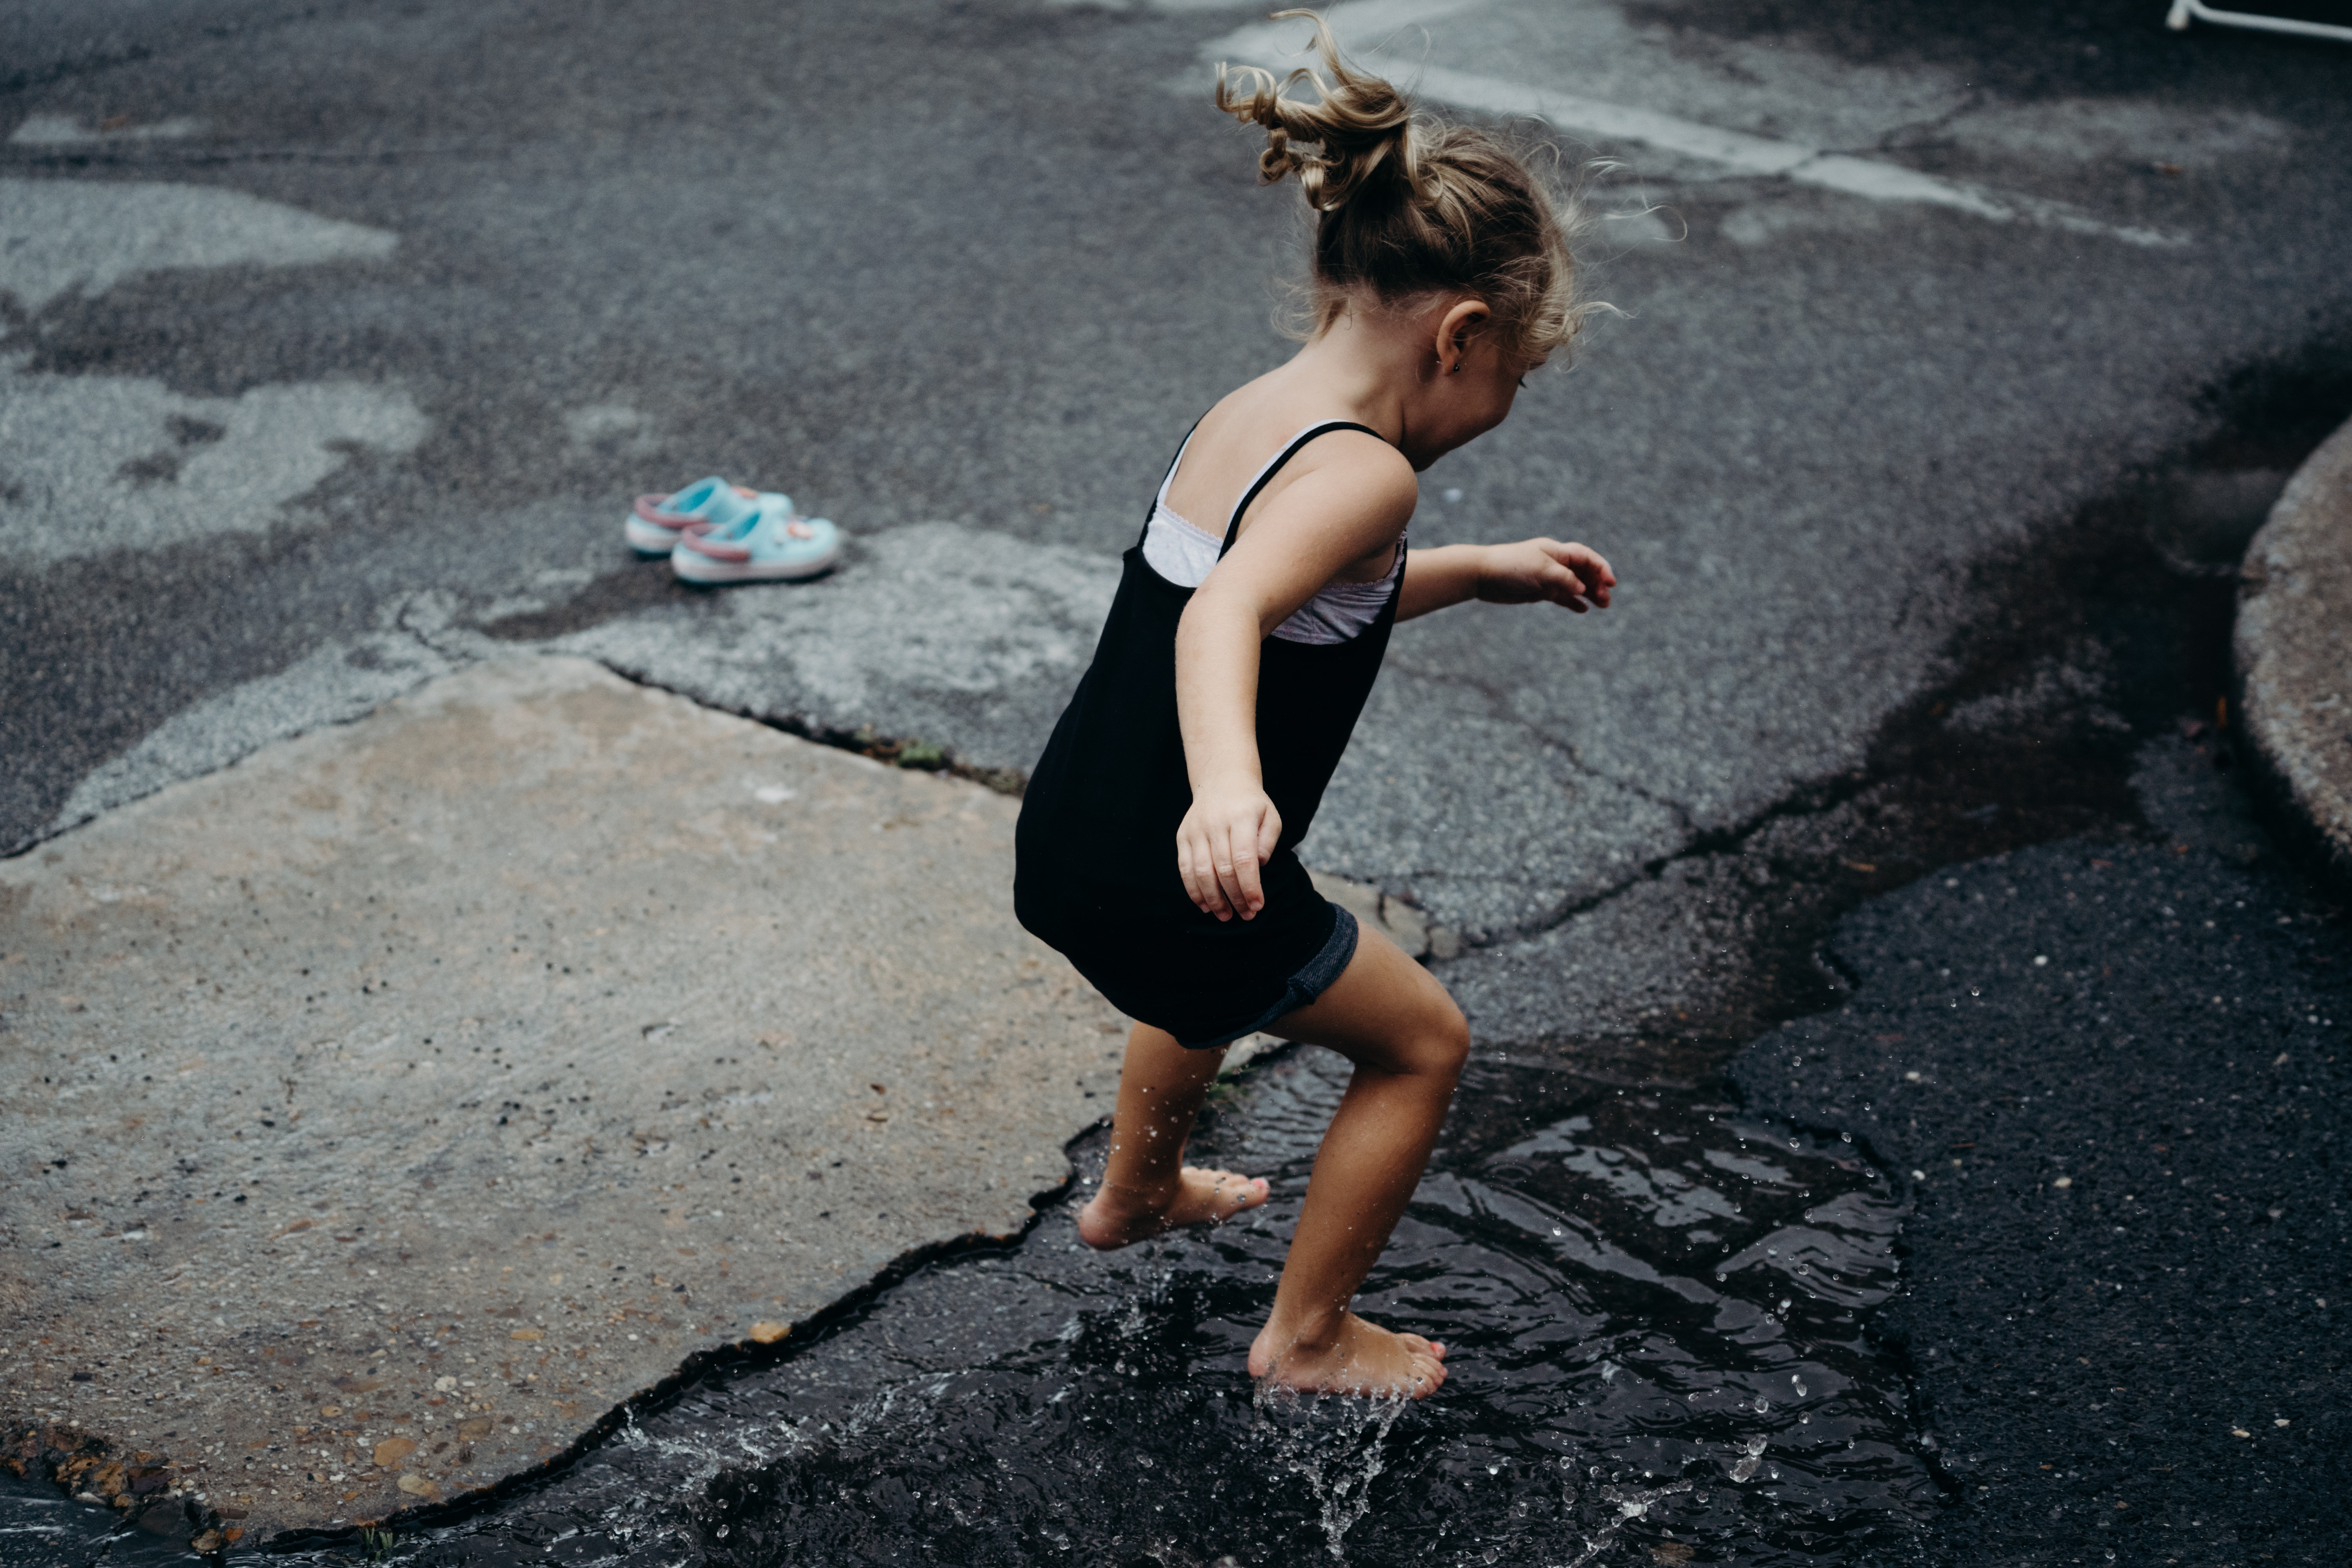 girl jumps in the water surface on asphalt road during daytime